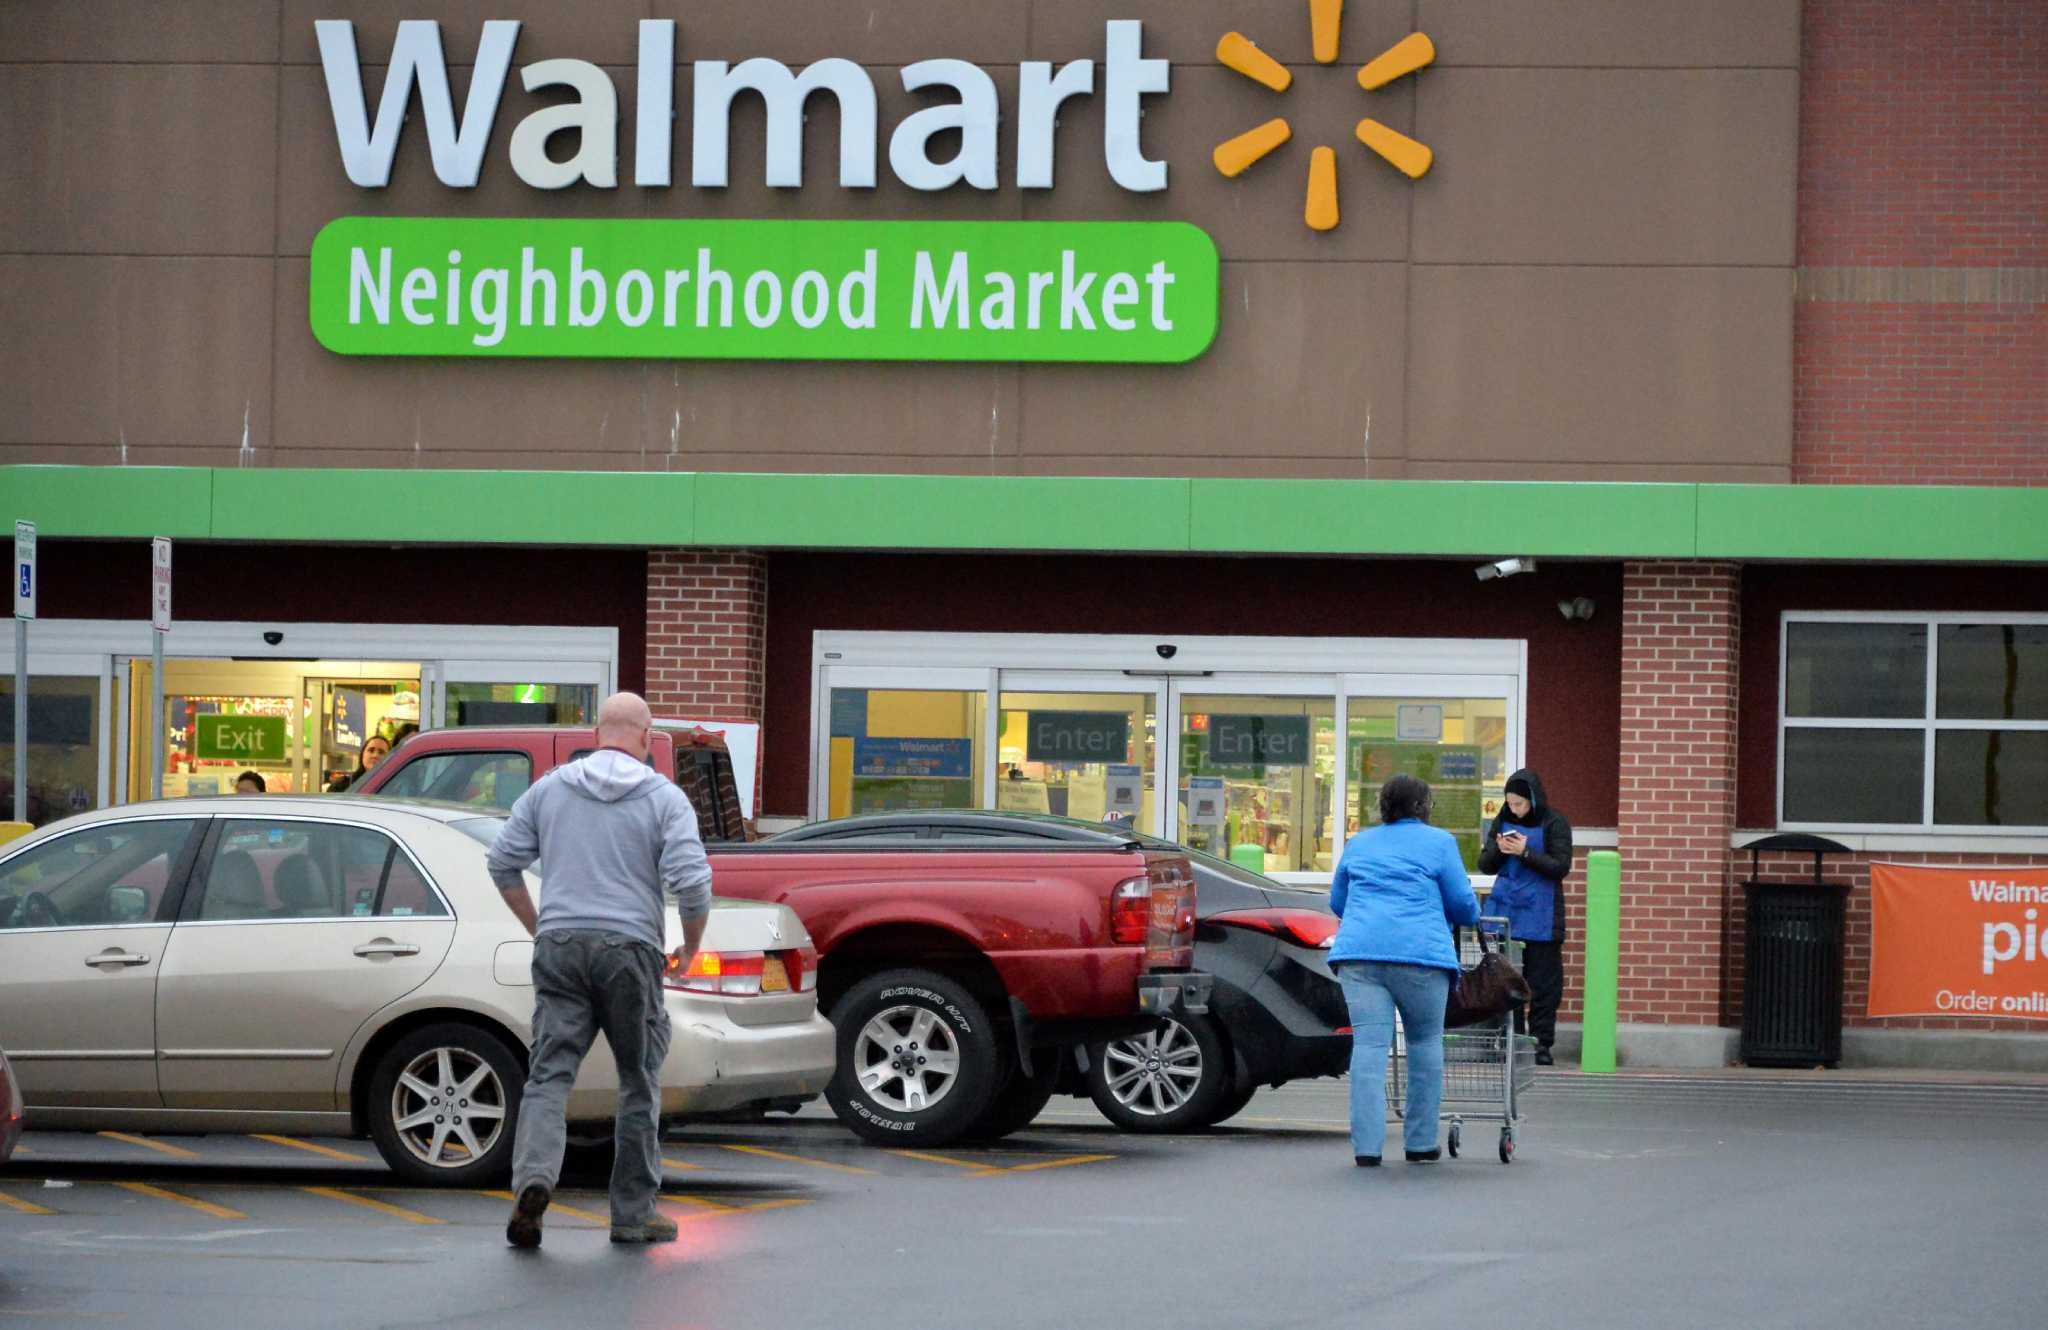 walmart but we do give them a 10 percent employee discount